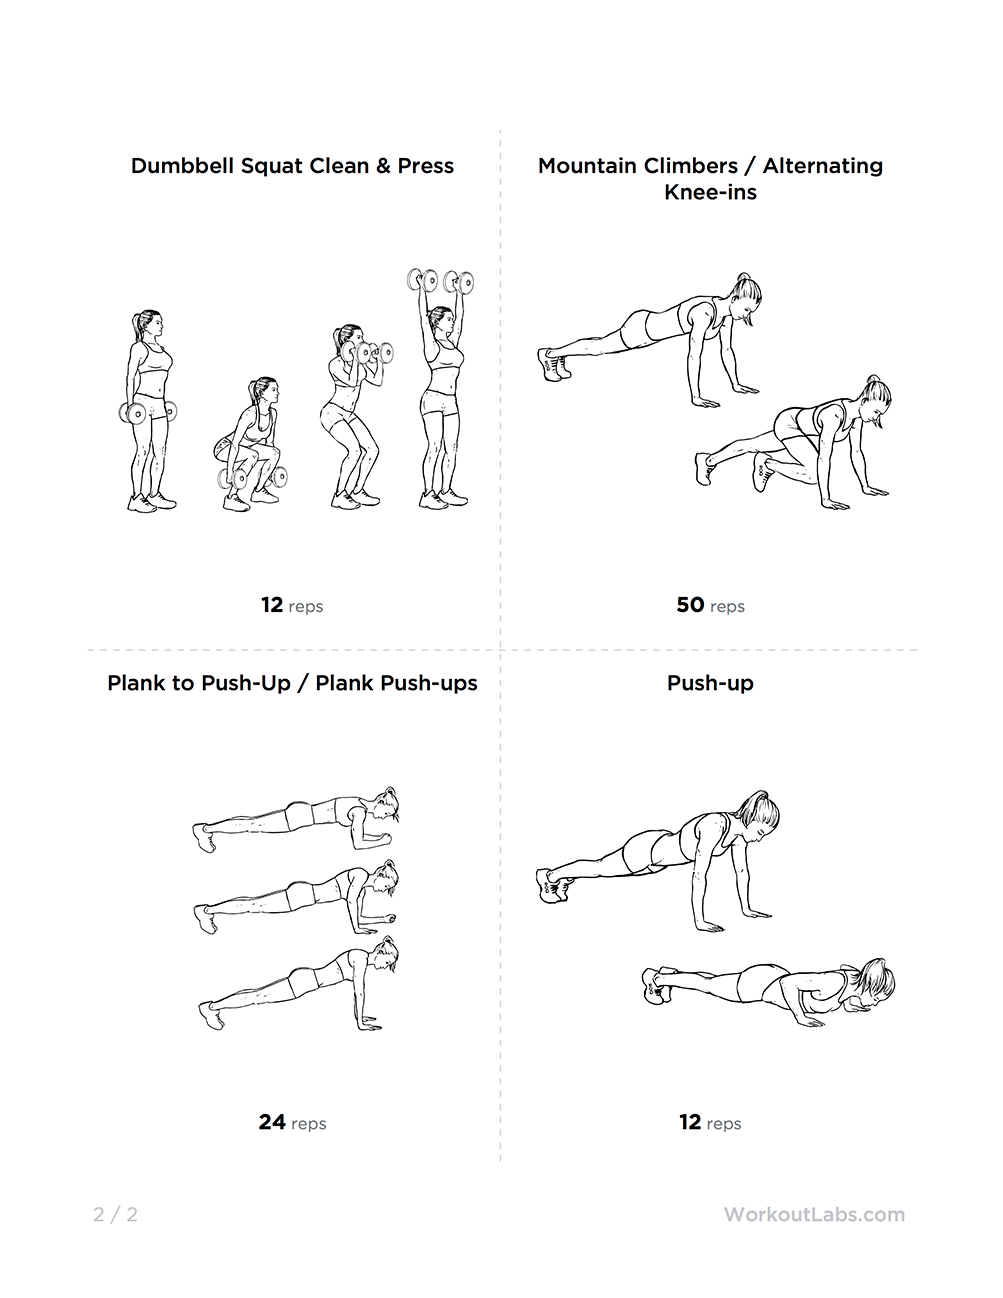 Kalya Itsines Bikini Body Guide: Arms Circuit Workout for